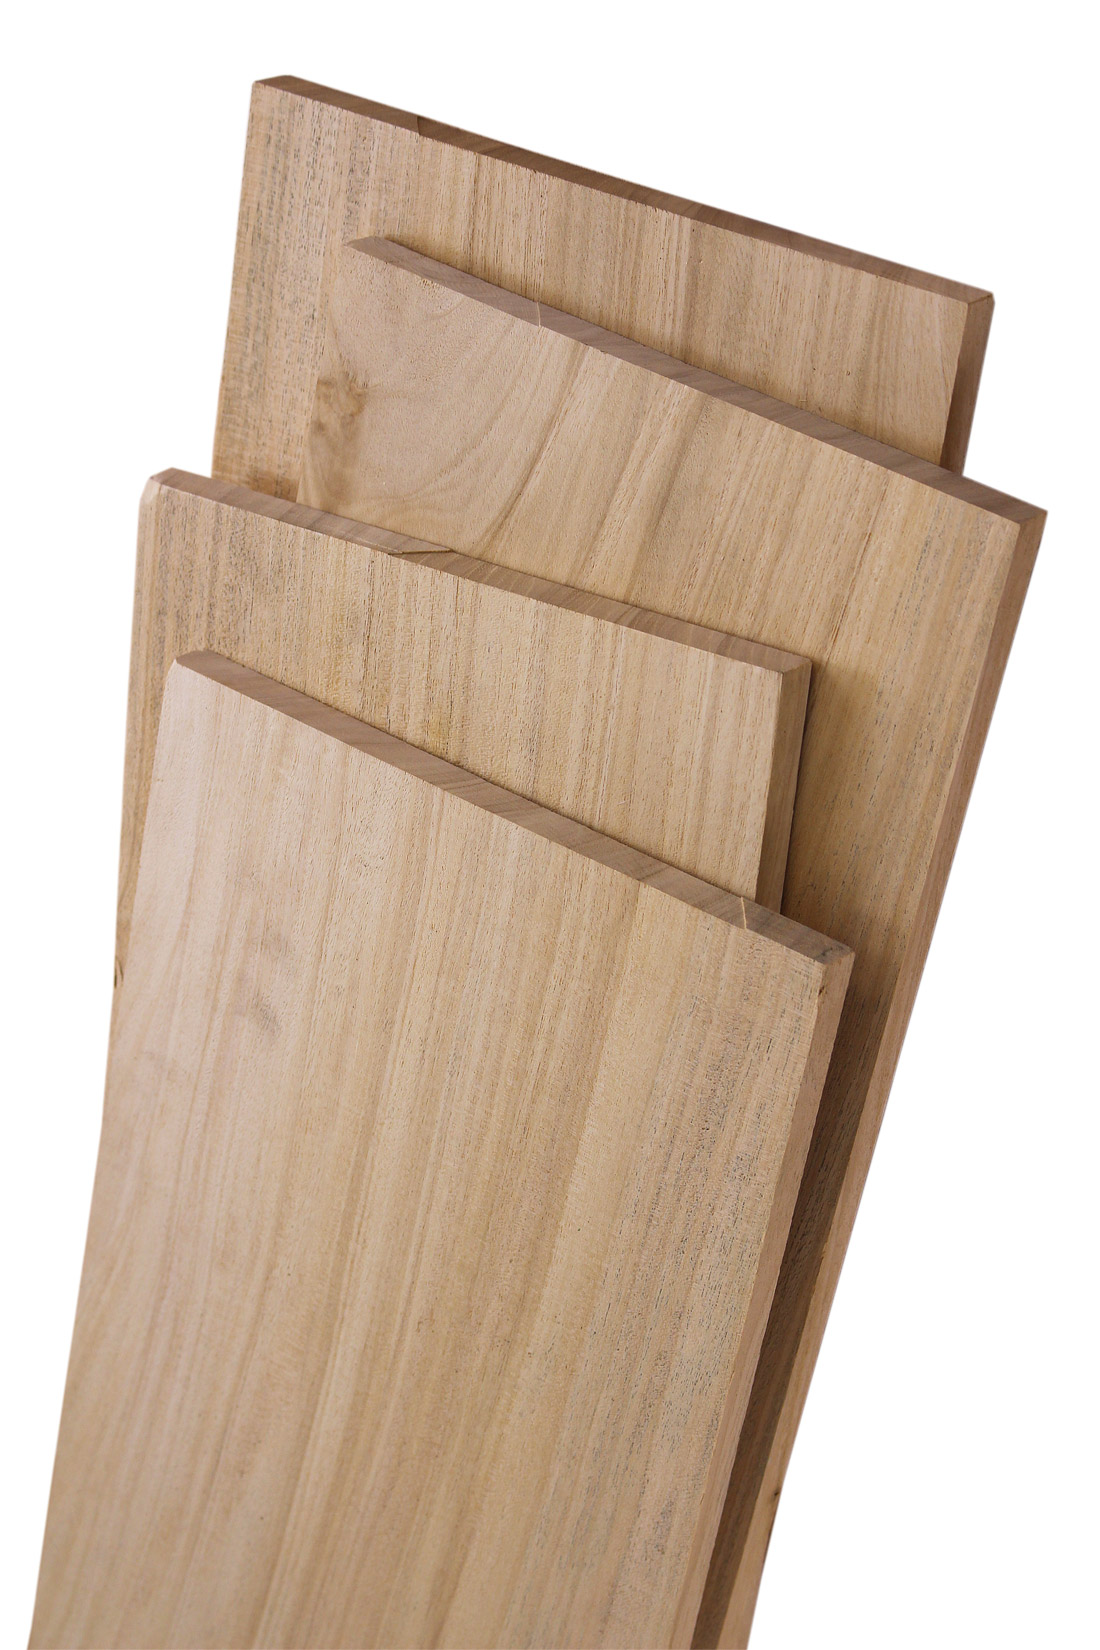 "Primavera 1/2"" Quarter Sawn Craft Pack: 10 Square Feet"